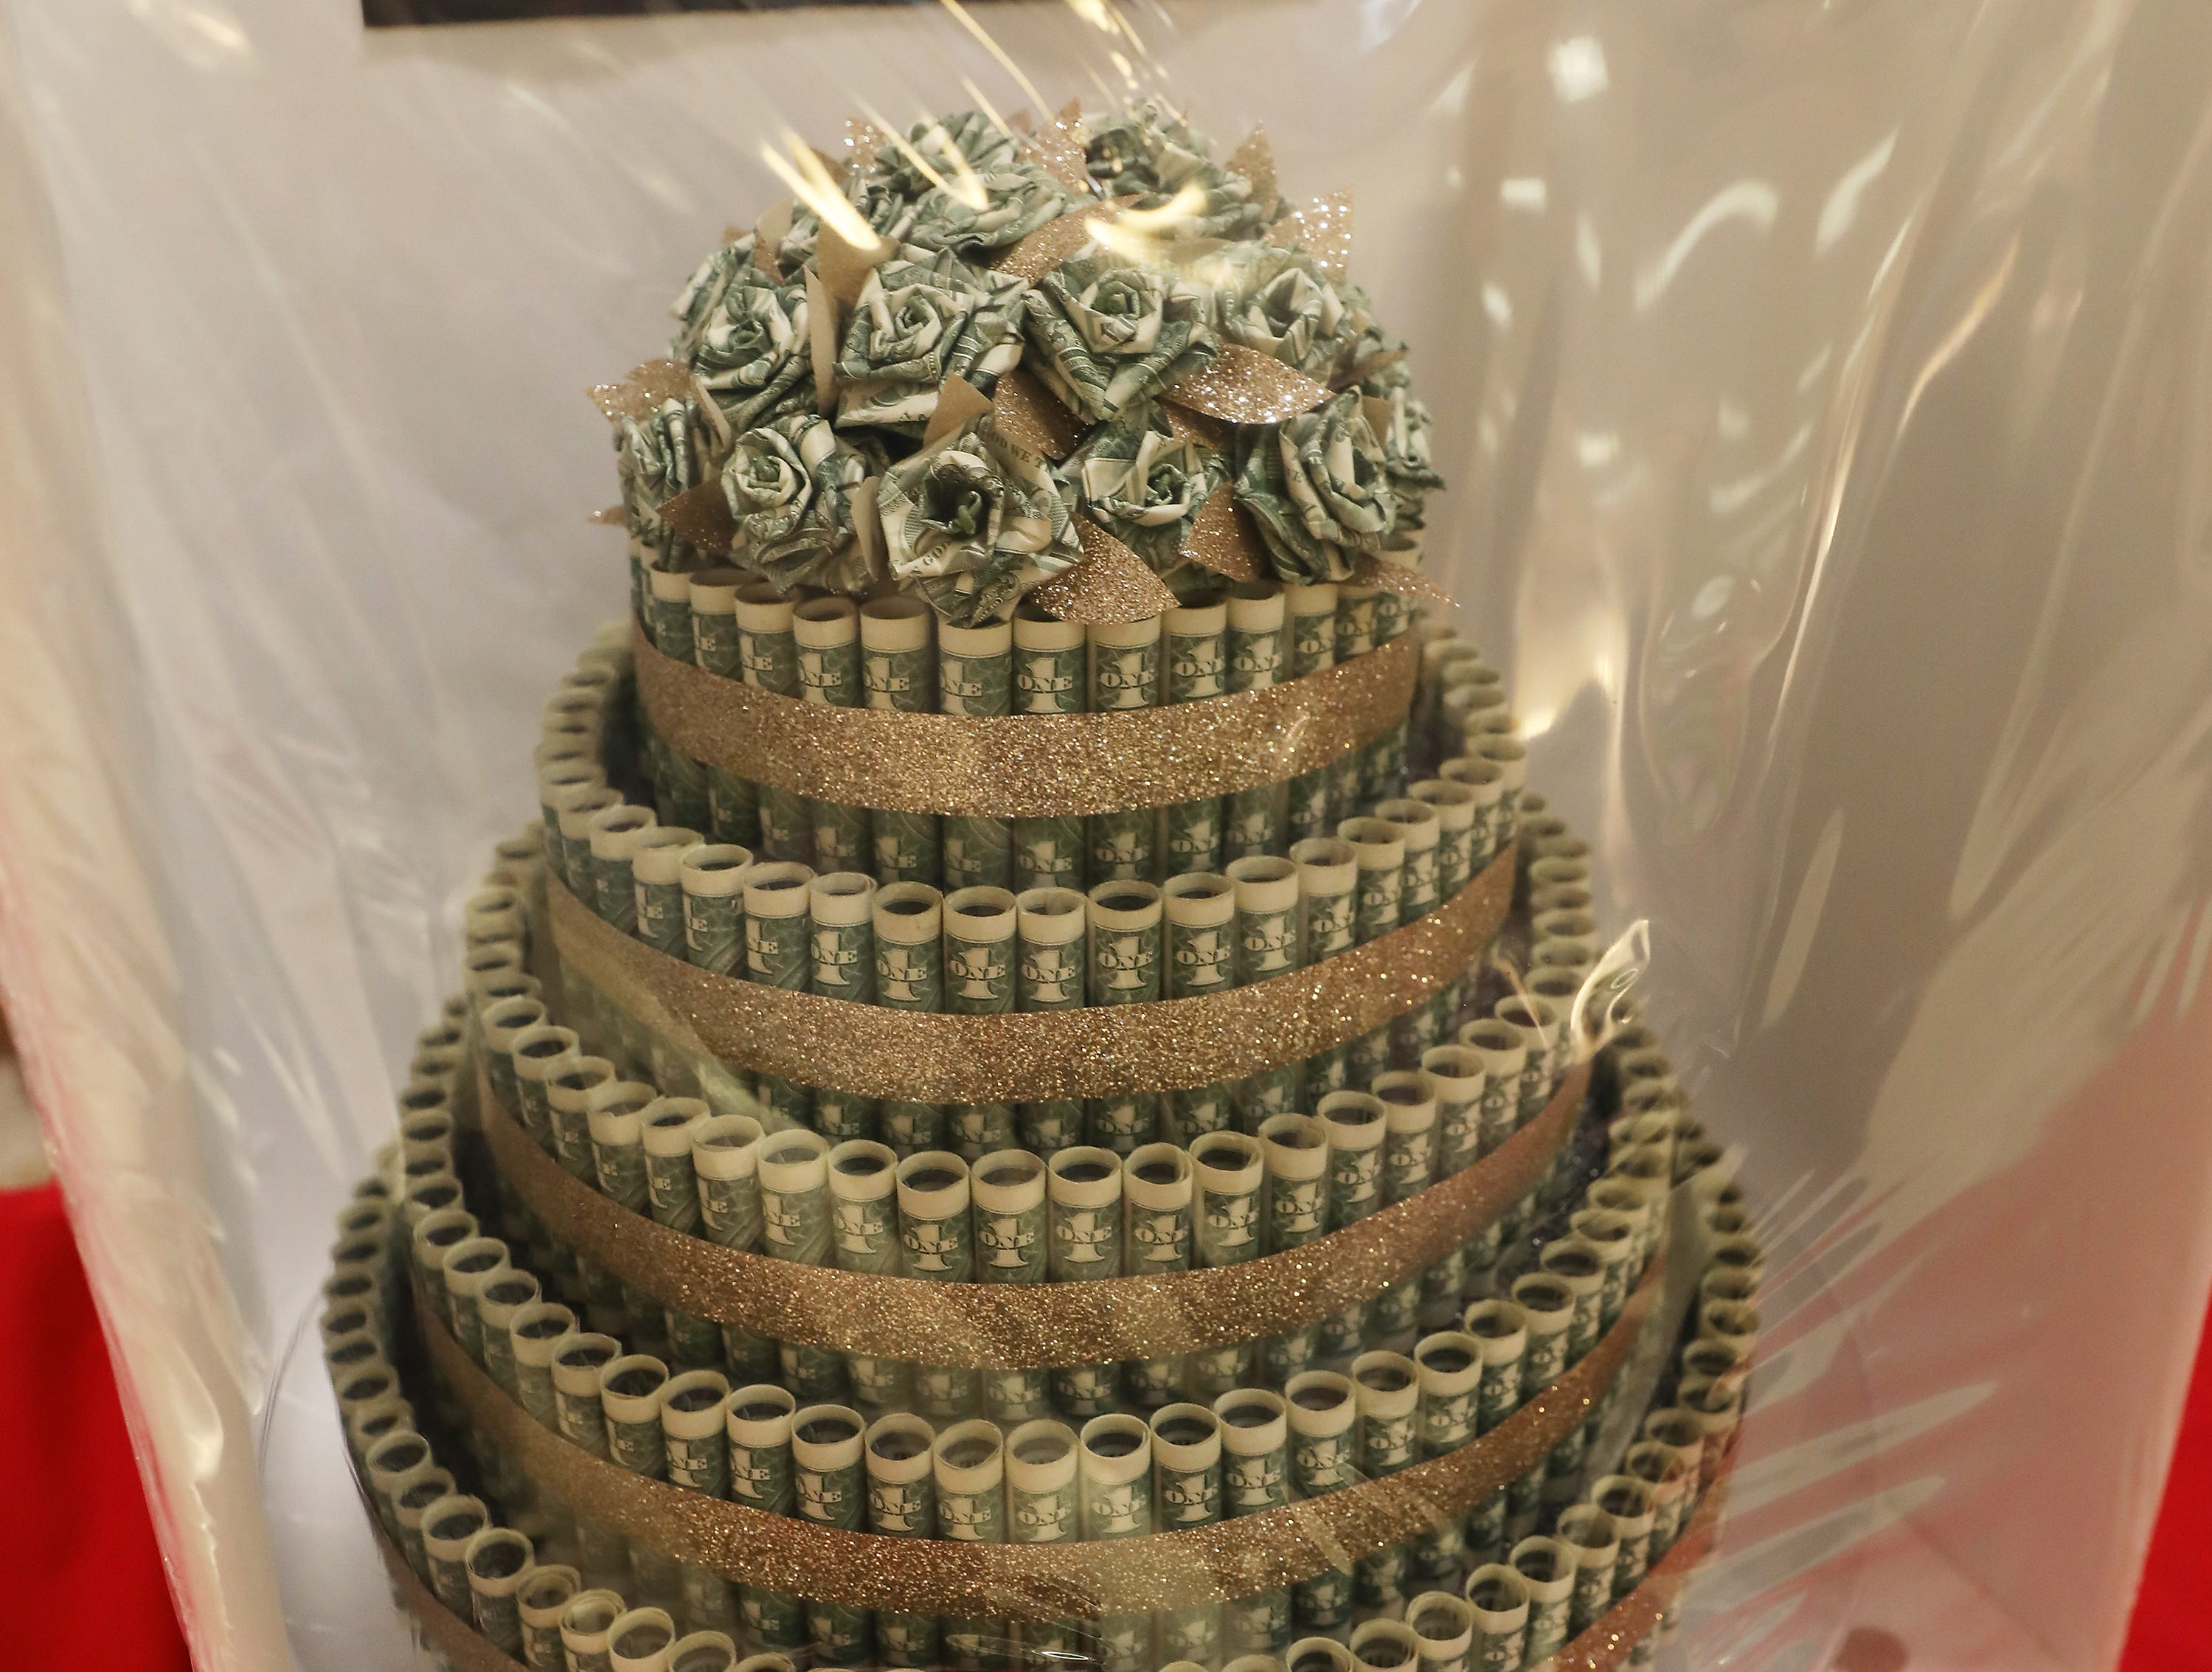 4:45 P.M. Friday cake 391 North Valley Bank - bottle of Dom Perignon; $755